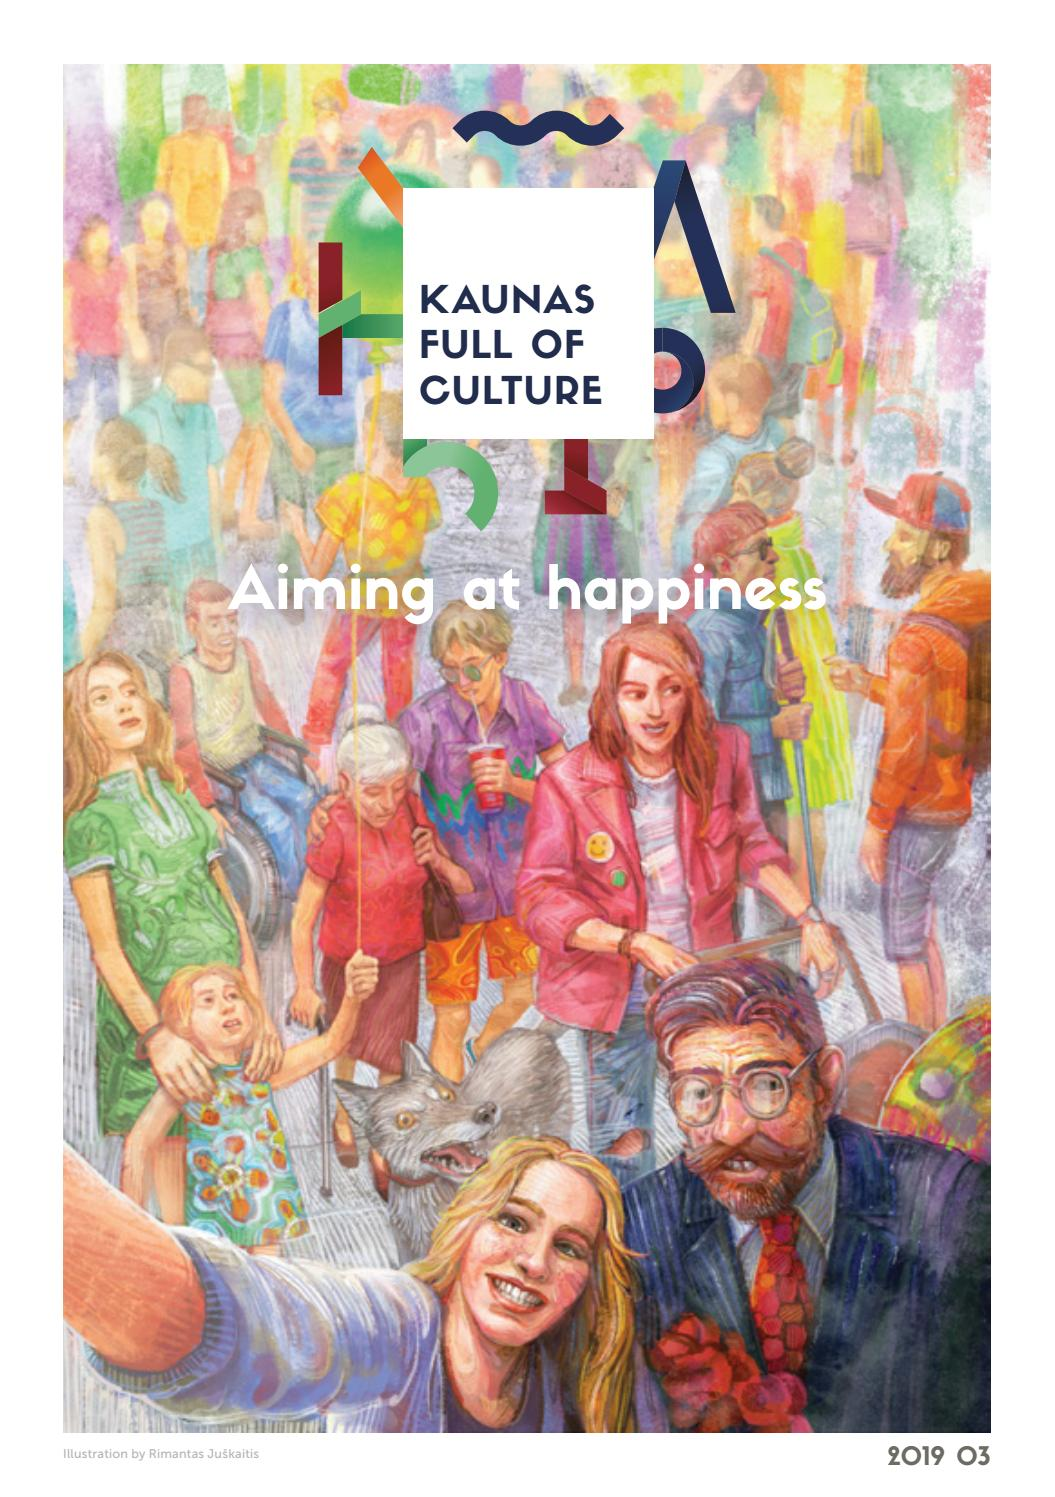 Adult Guide in Kaunas